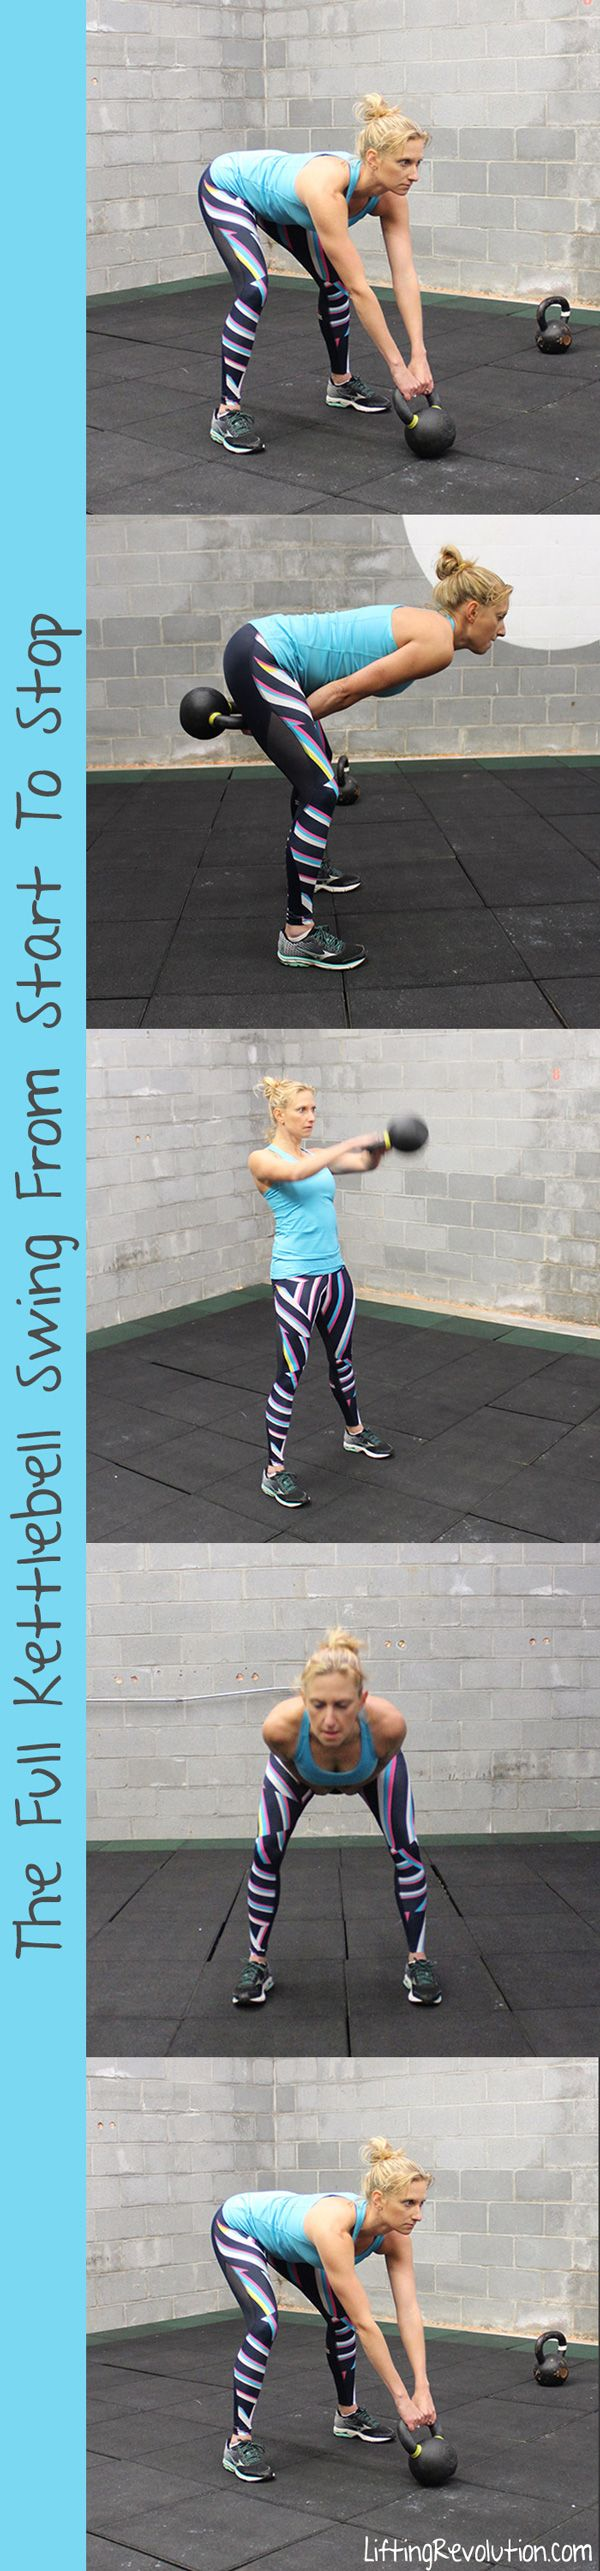 The Ultimate Guide To Master The Kettlebell Swing. Videos and graphics to help! #kettlebells #swing